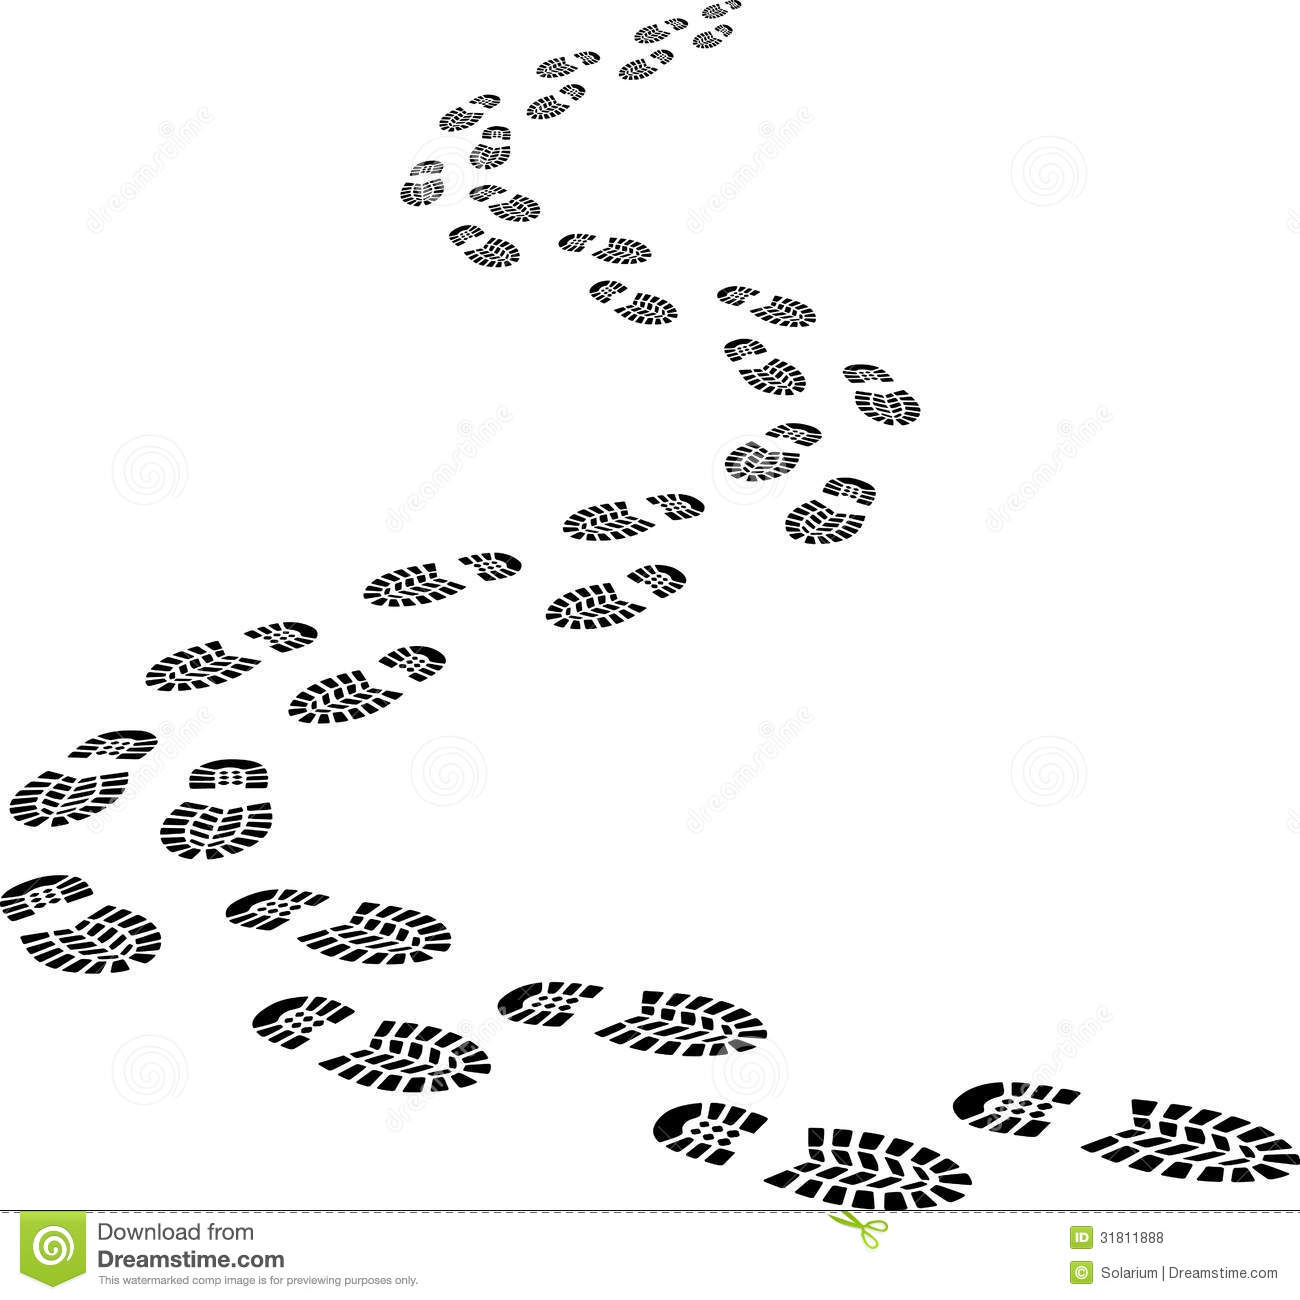 Footprints Royalty Free Stock Photos - Image: 31811888